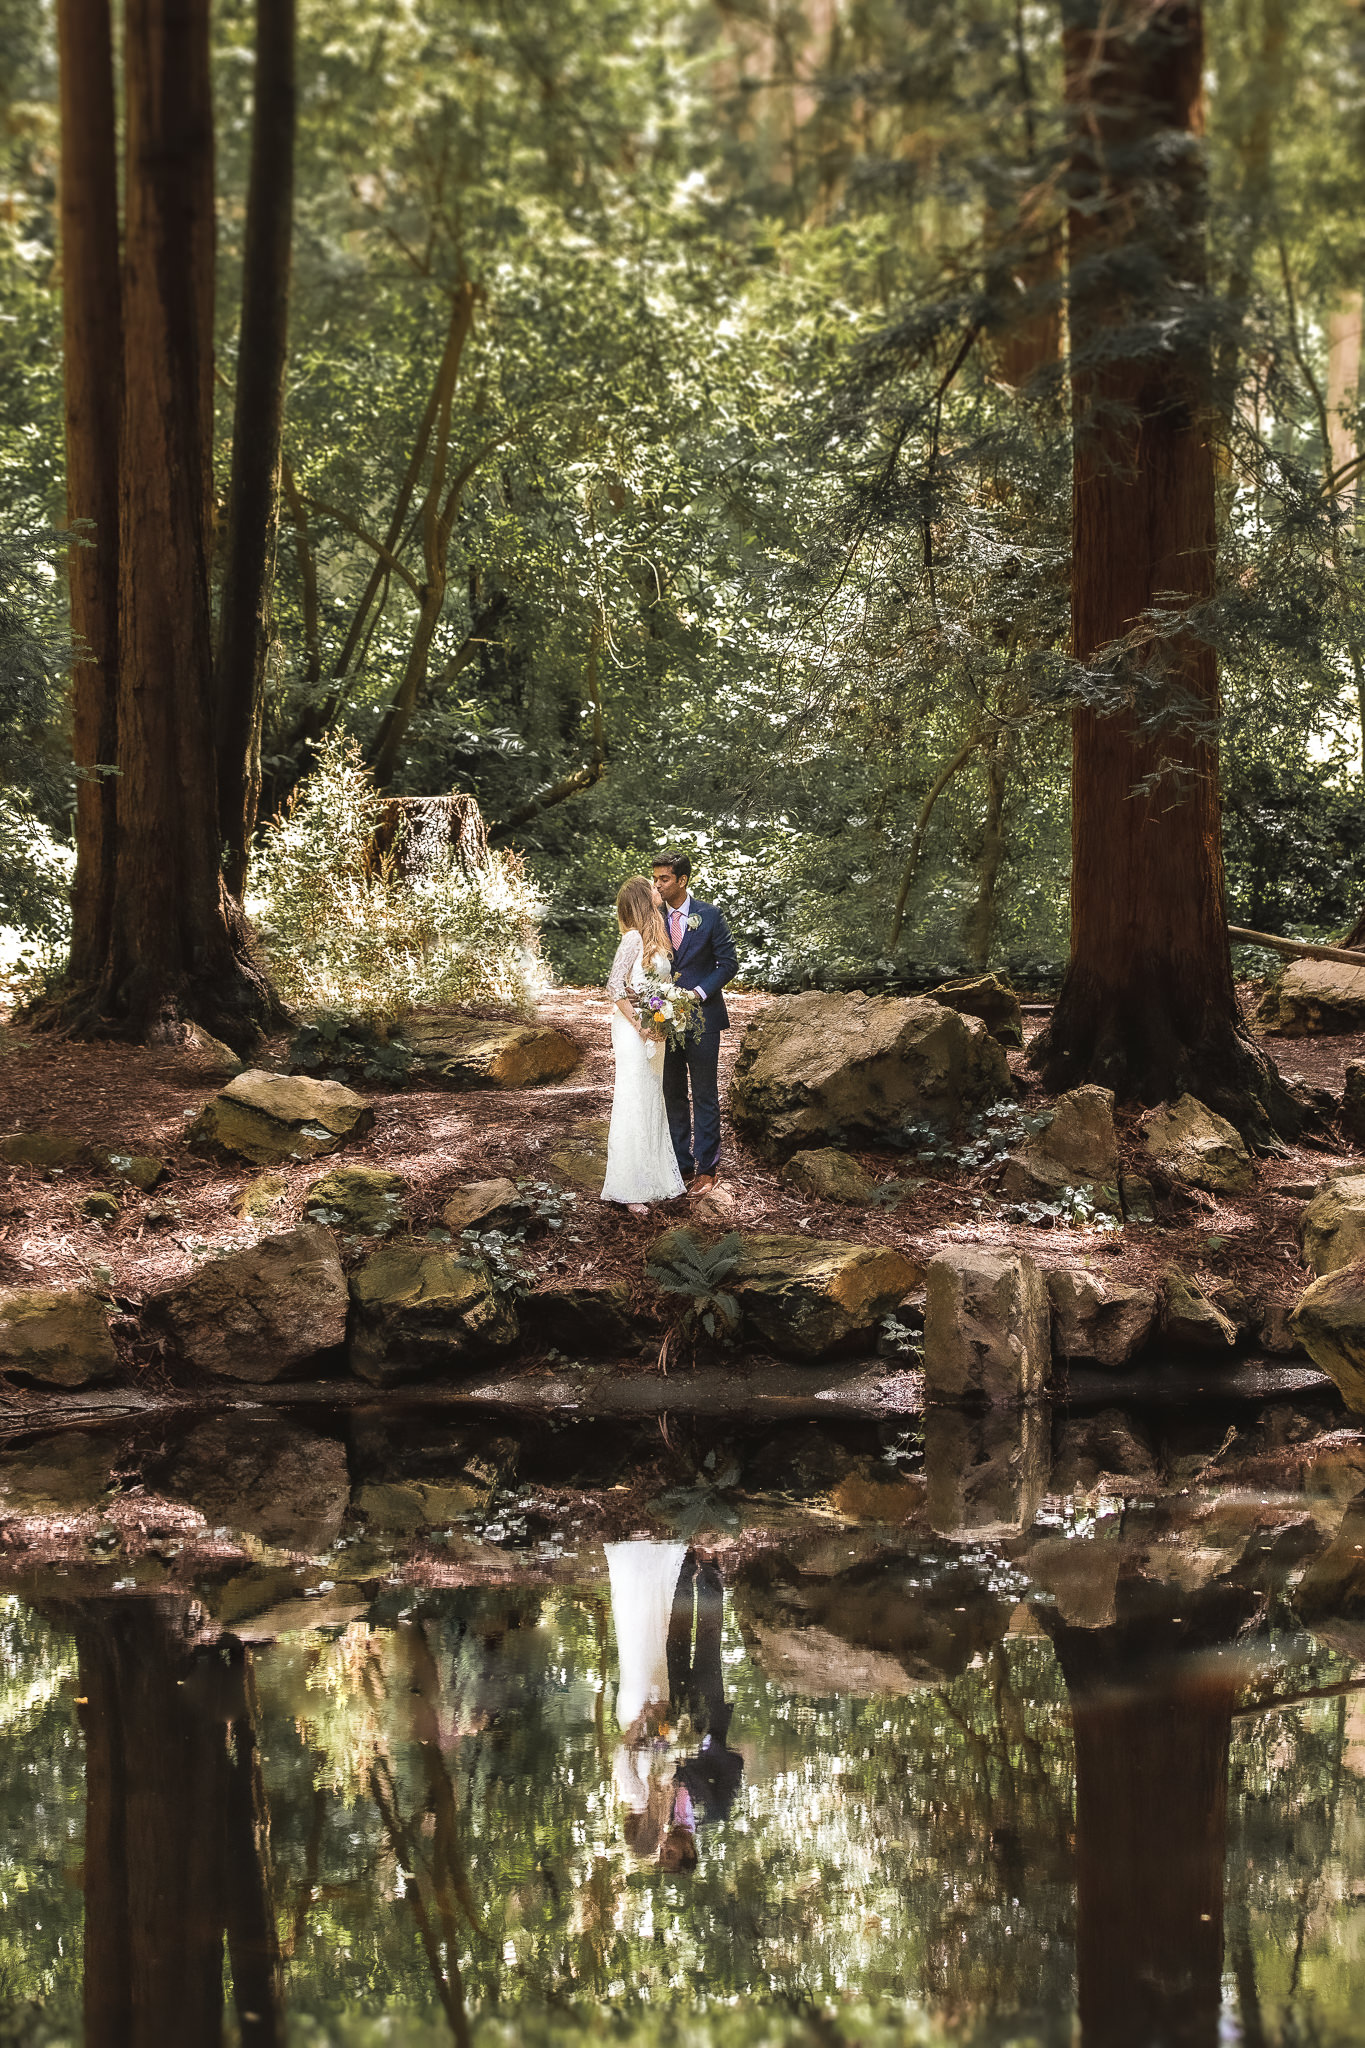 The clubhouse, also known as the Stern Grove Clubhouse, is surrounded by many opportunities for beautiful wedding photos, with tall redwood trees and a lake for awesome reflection photos.